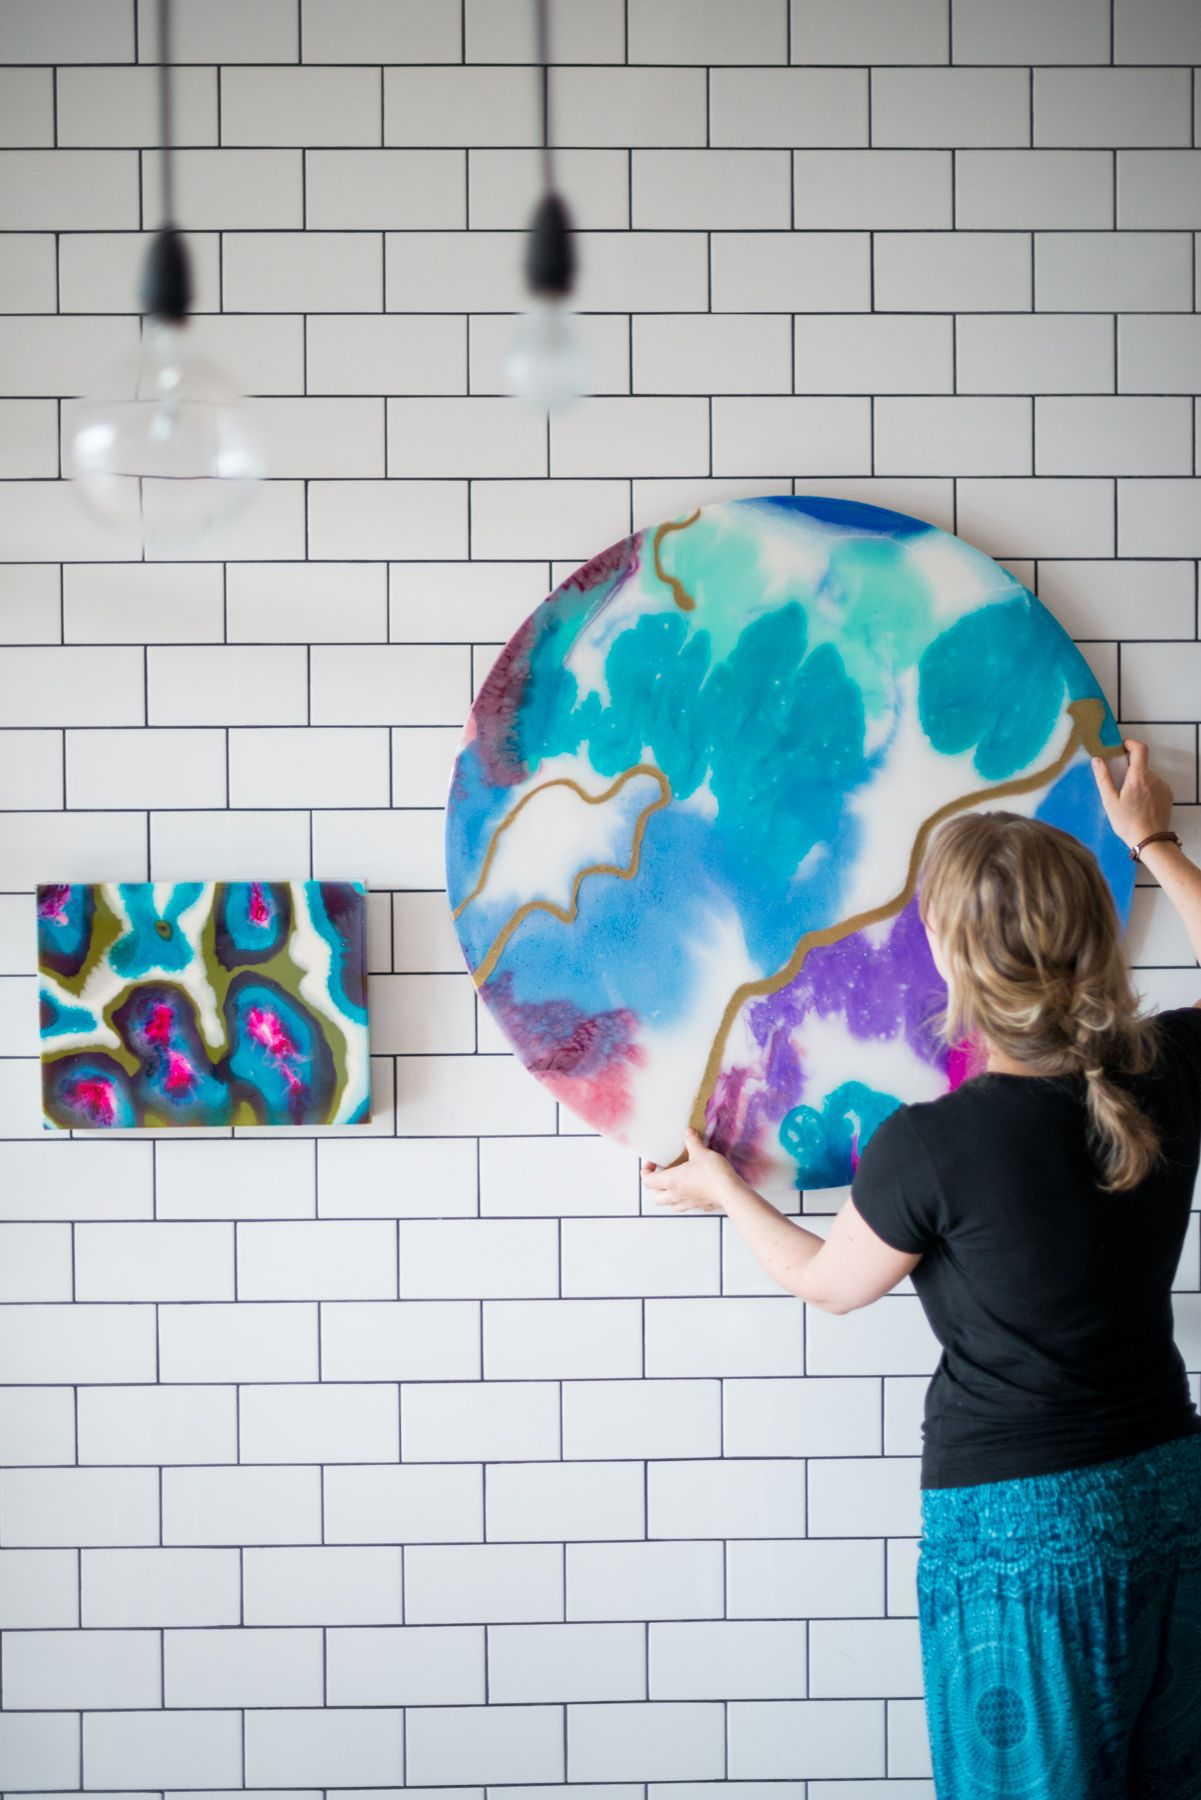 Resin for arts and crafts - Learn How To Make Resin Art In Our Classes